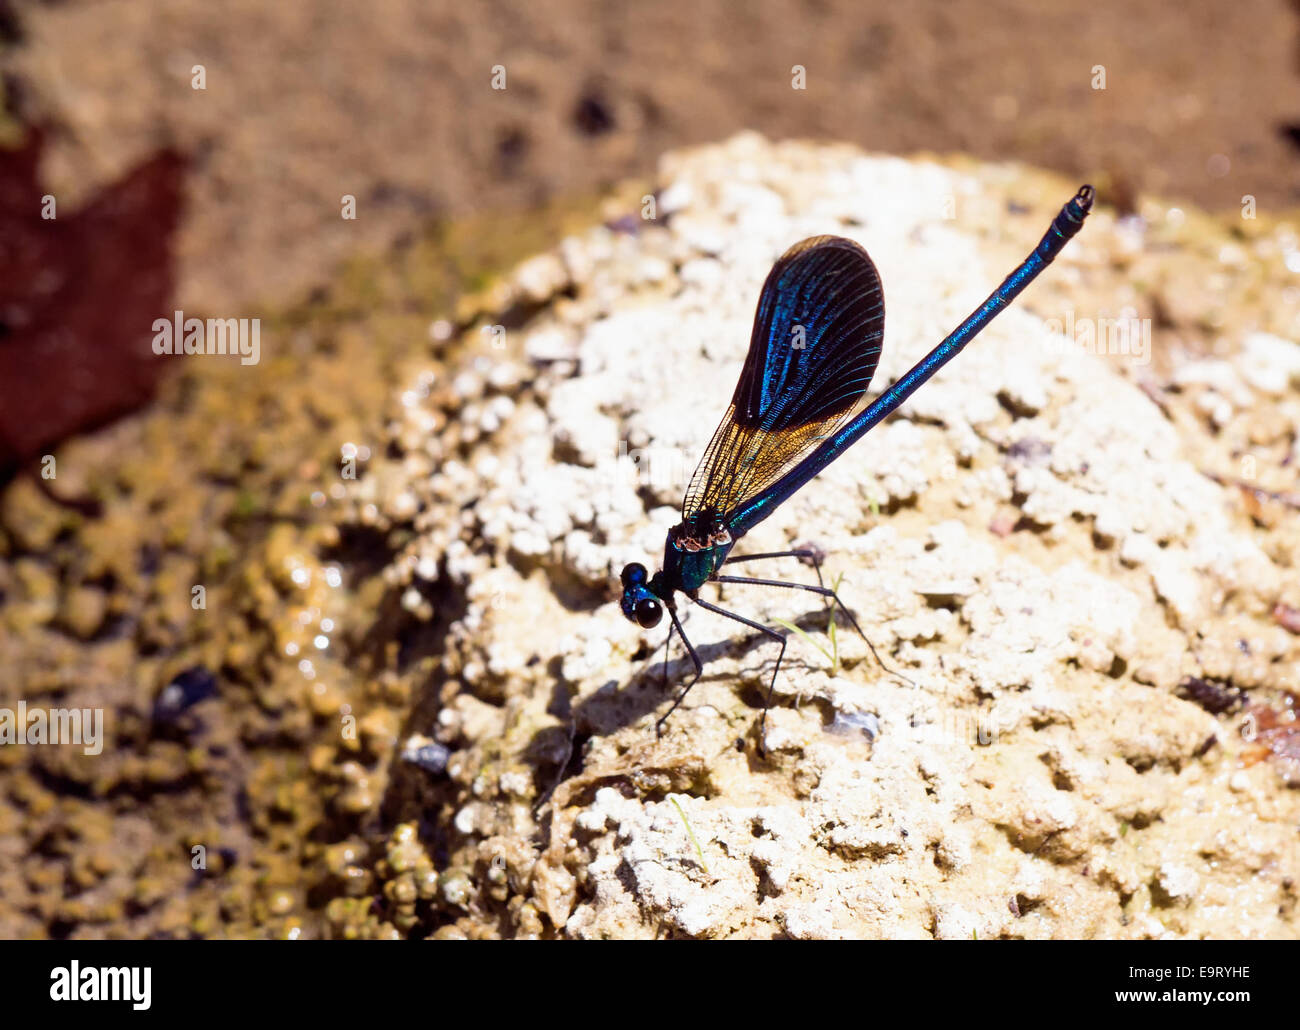 Calopteryx splendens cretensis  the Cretan subspecies of the  Banded Demoiselle resting beside a stream in Rethymnon - Stock Image